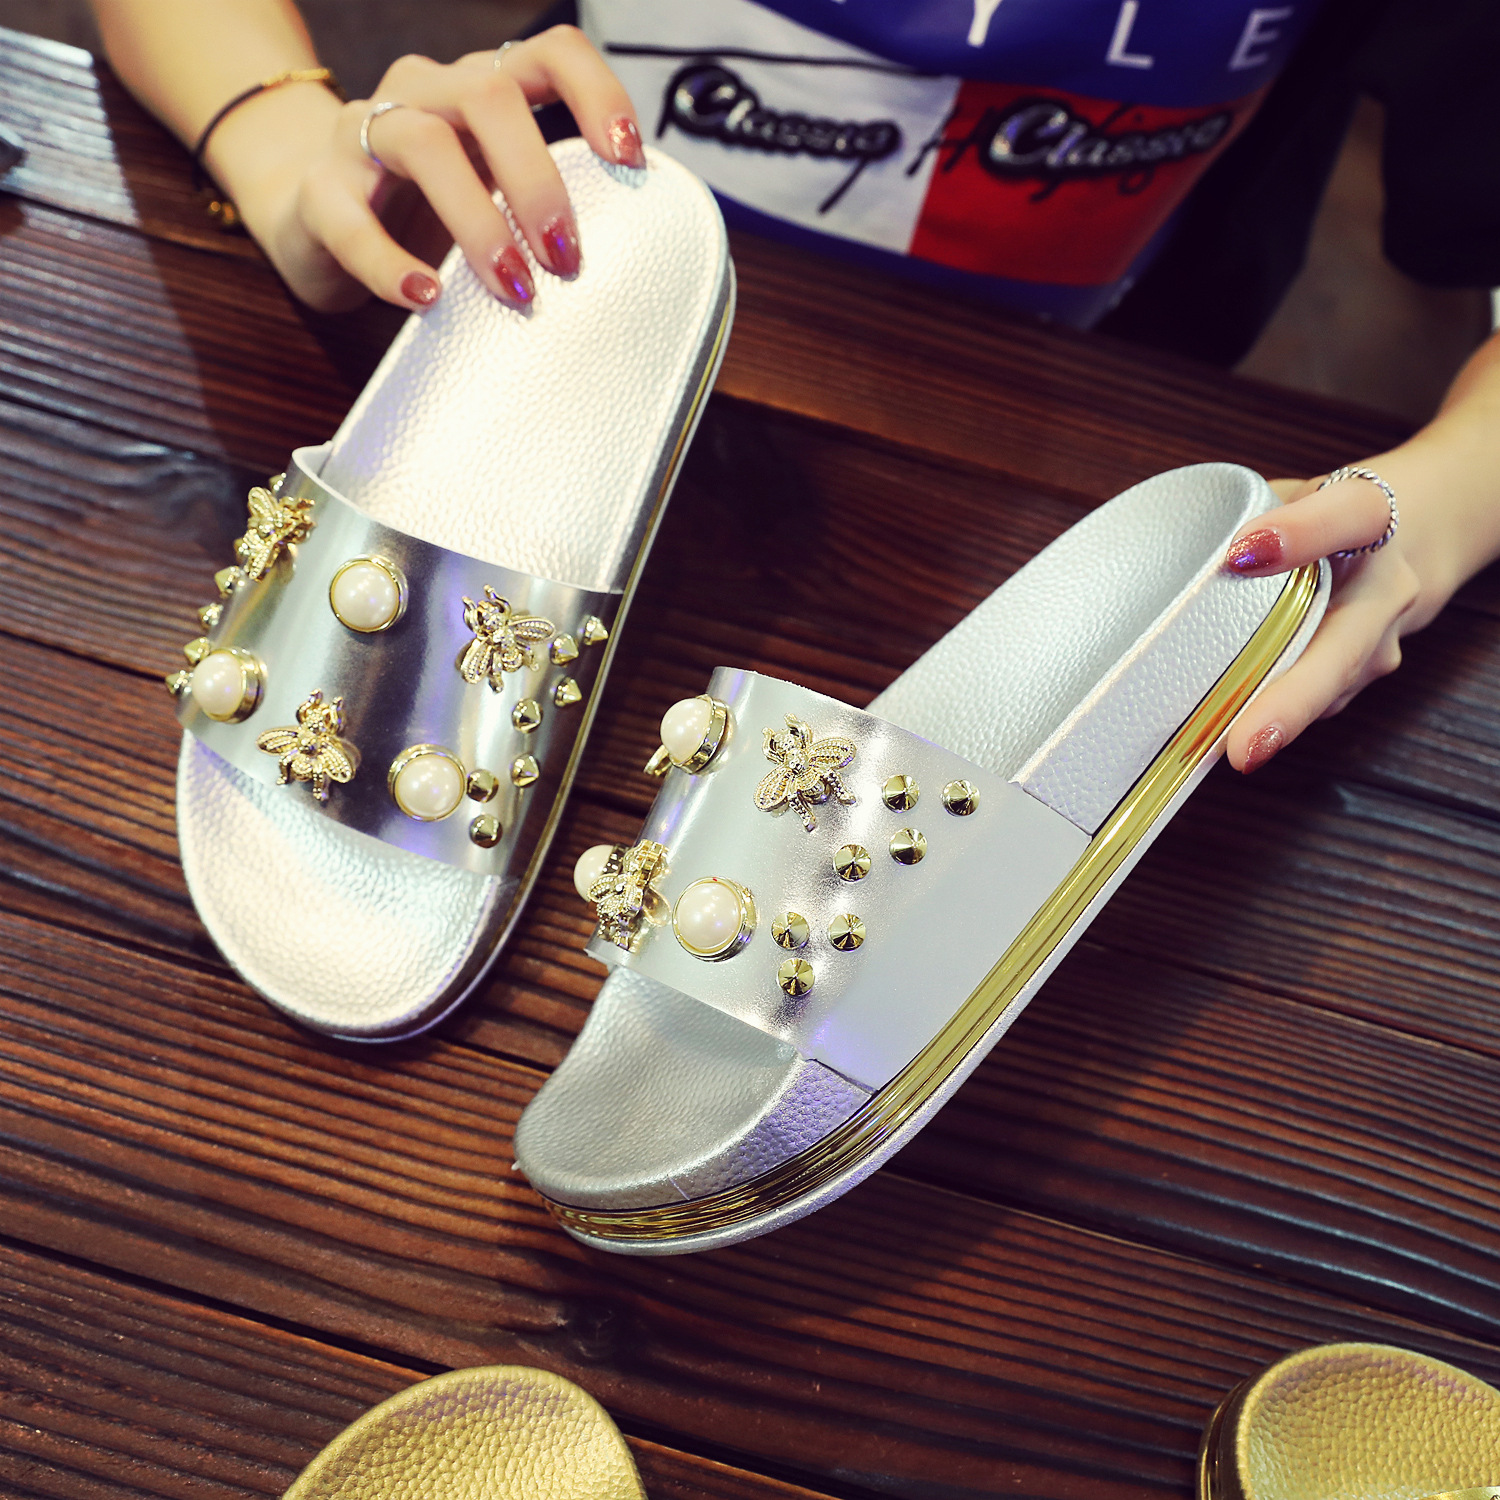 2018 New Women Slippers Flat Casual Women Shoes Slip On Slides Beach Slippers Flip Flops Sandals Fashion Rivet Pearl Slipper plus size34 43 2016 new fashion women slides black flip flops shoes wedges pumps beading casual women s slipper sandals ps2572